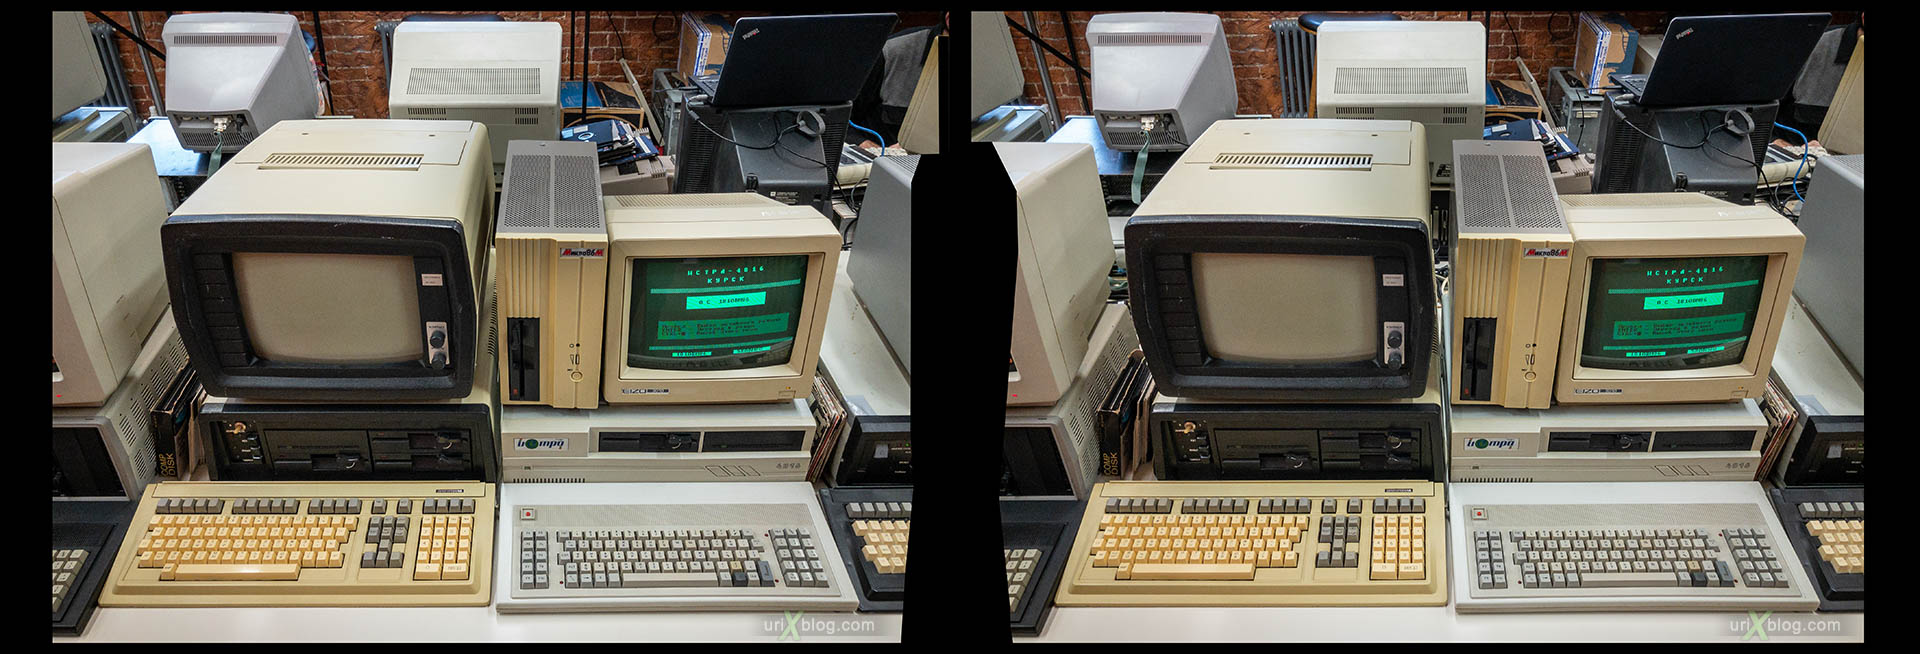 Yandex Store and Museum, old retro personal computers, Soviet, PC, Moscow, Russia, 3D, stereo pair, cross-eyed, crossview, cross view stereo pair, stereoscopic